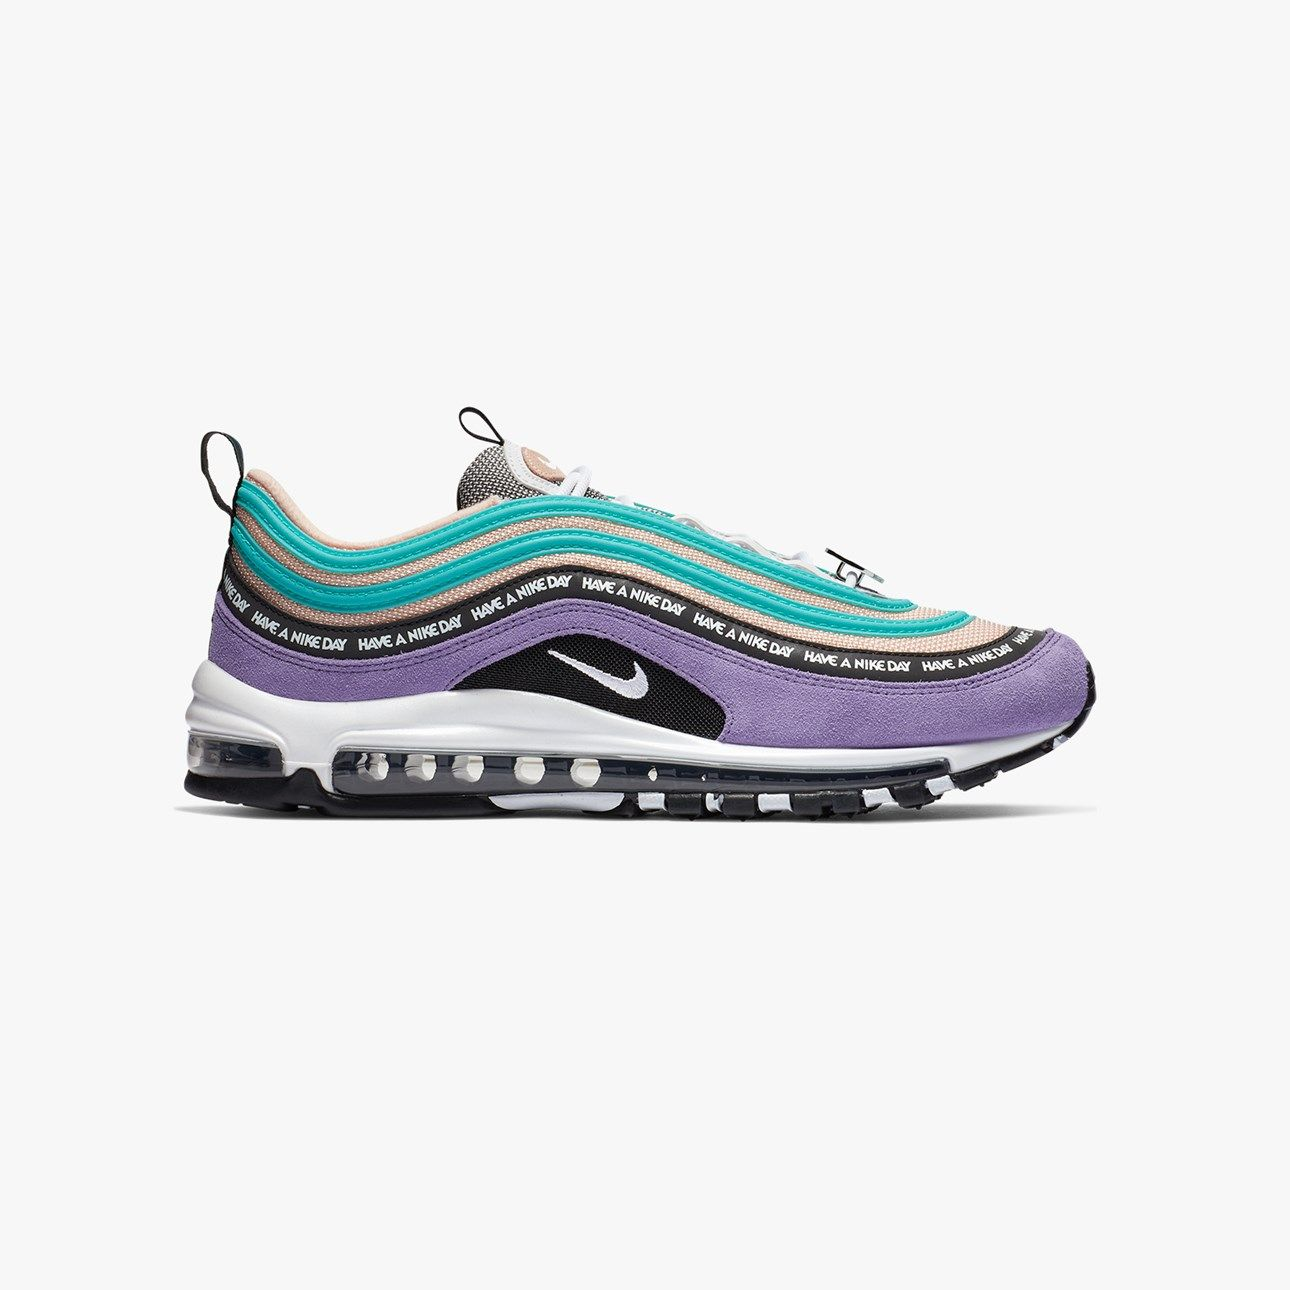 have a nike day air max 97 release date